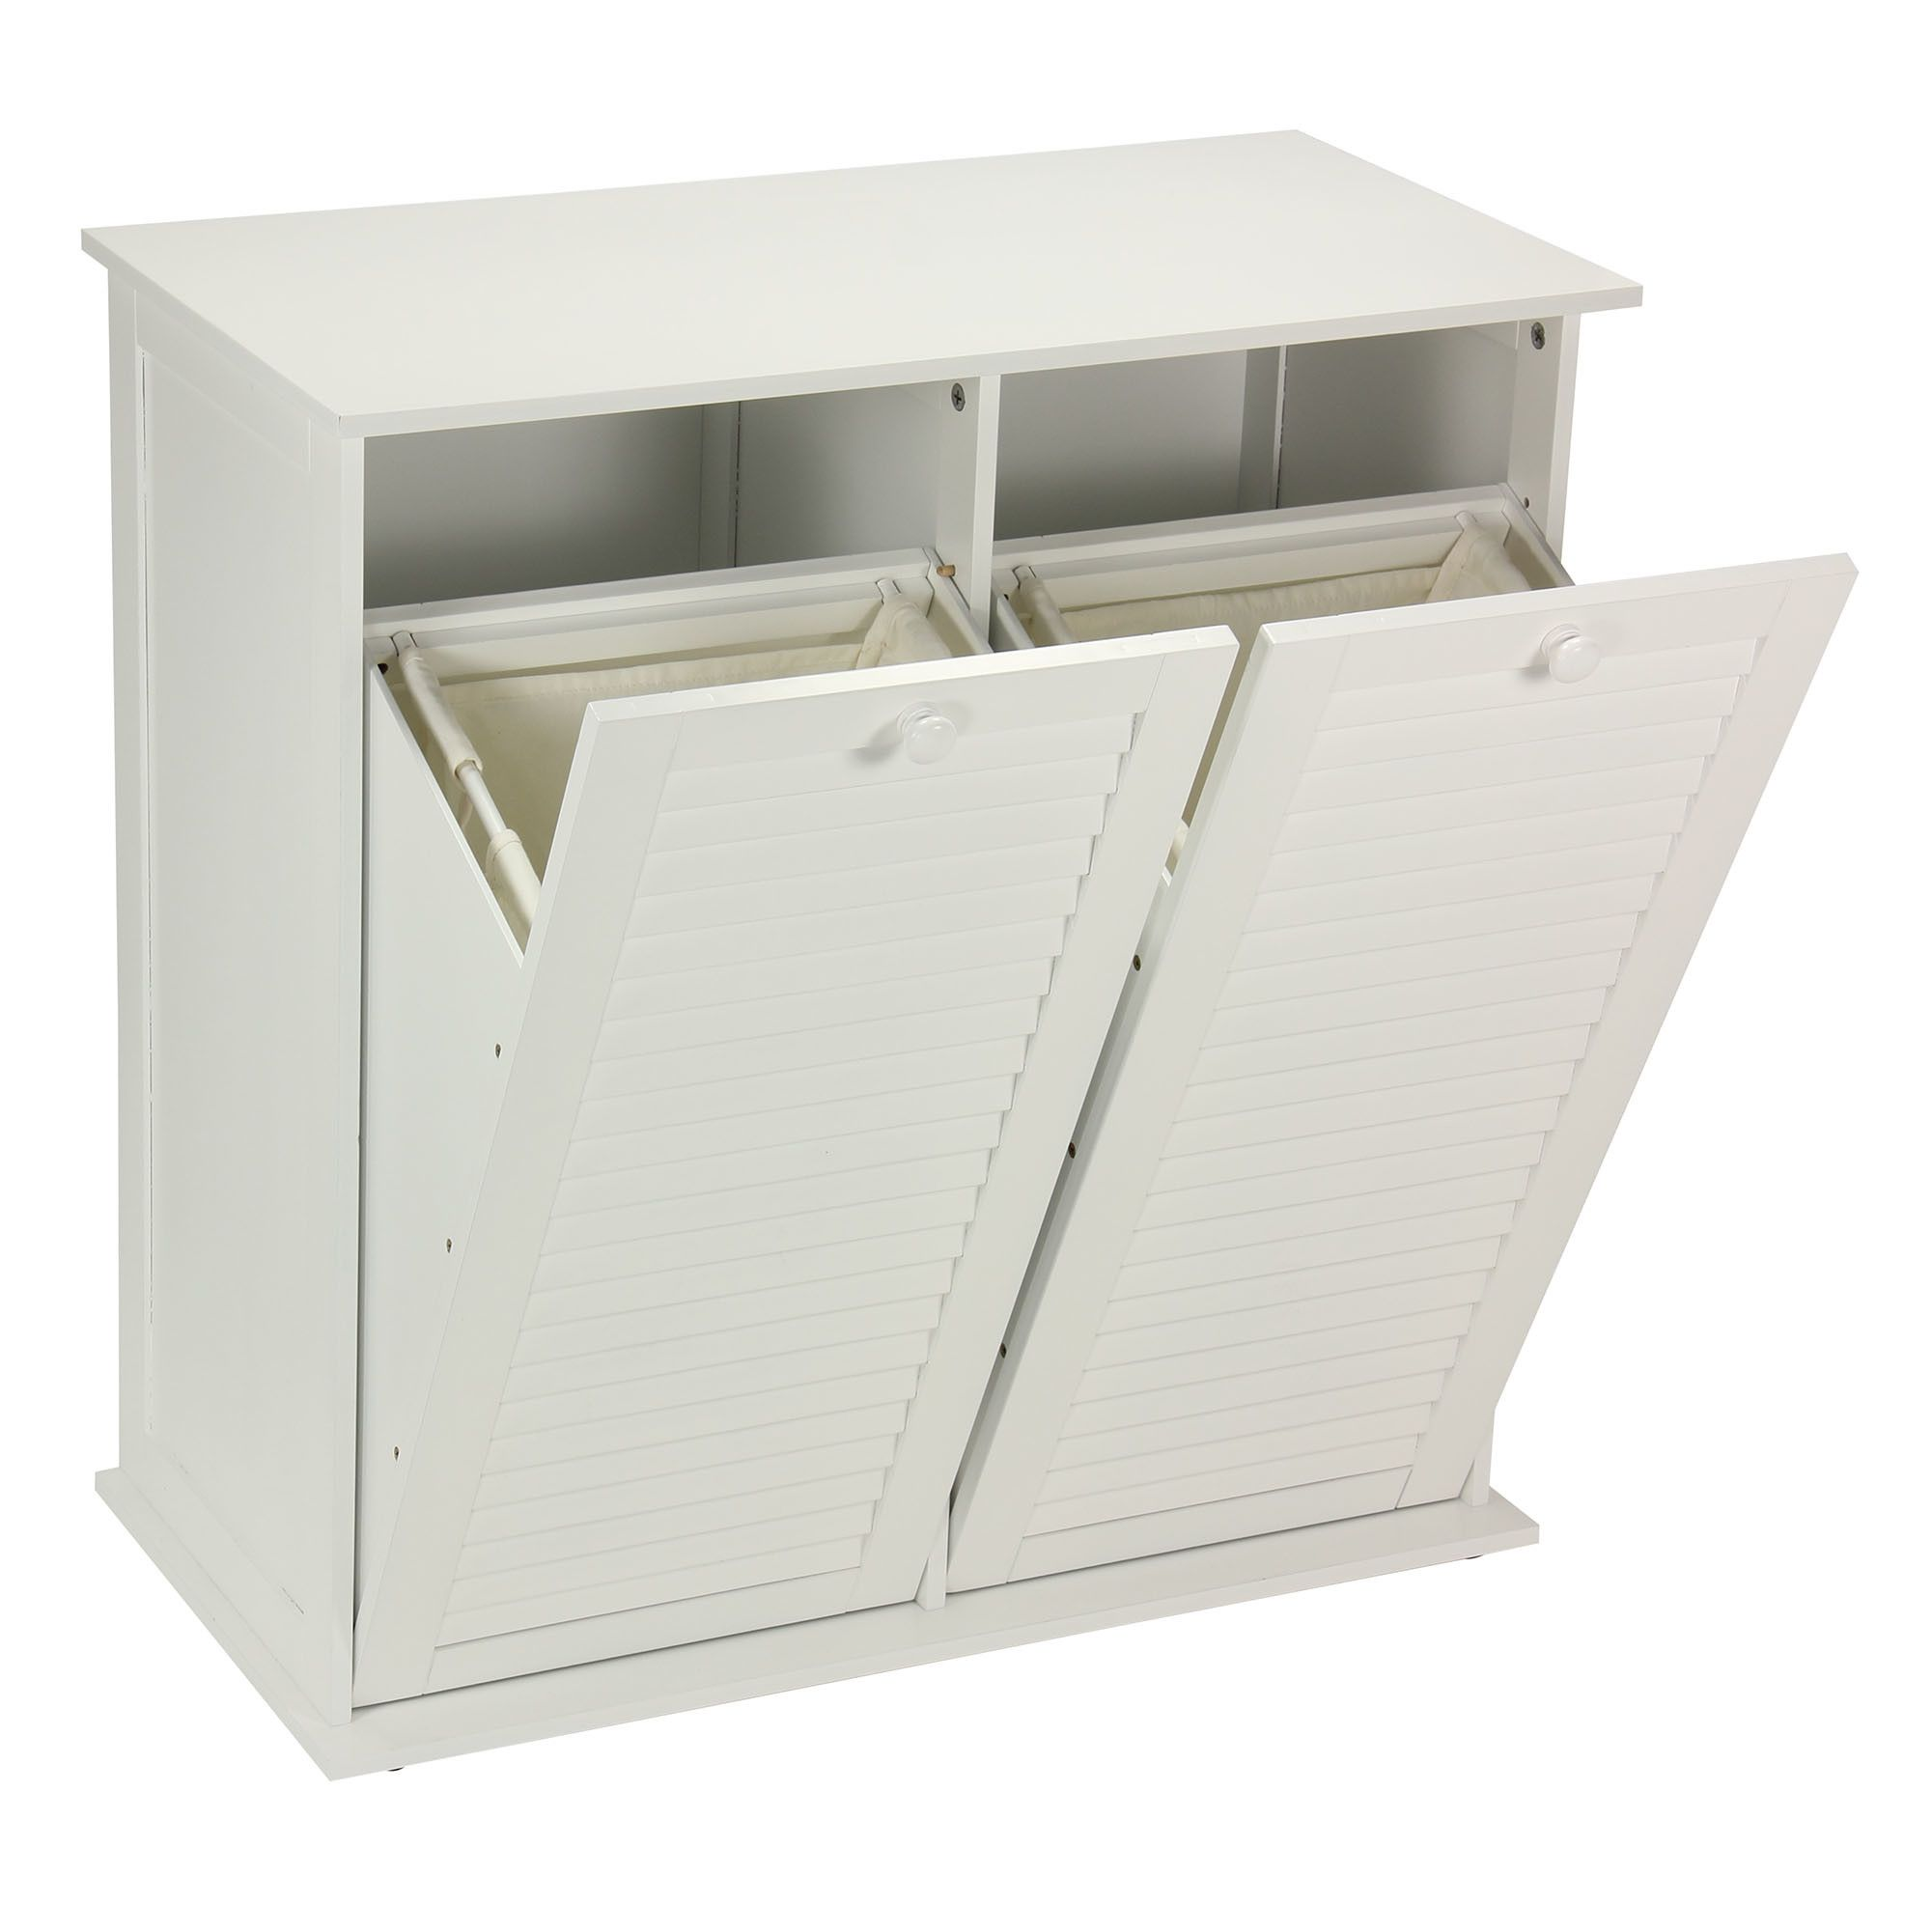 Household Essentials TiltOut Laundry Sorter Cabinet with